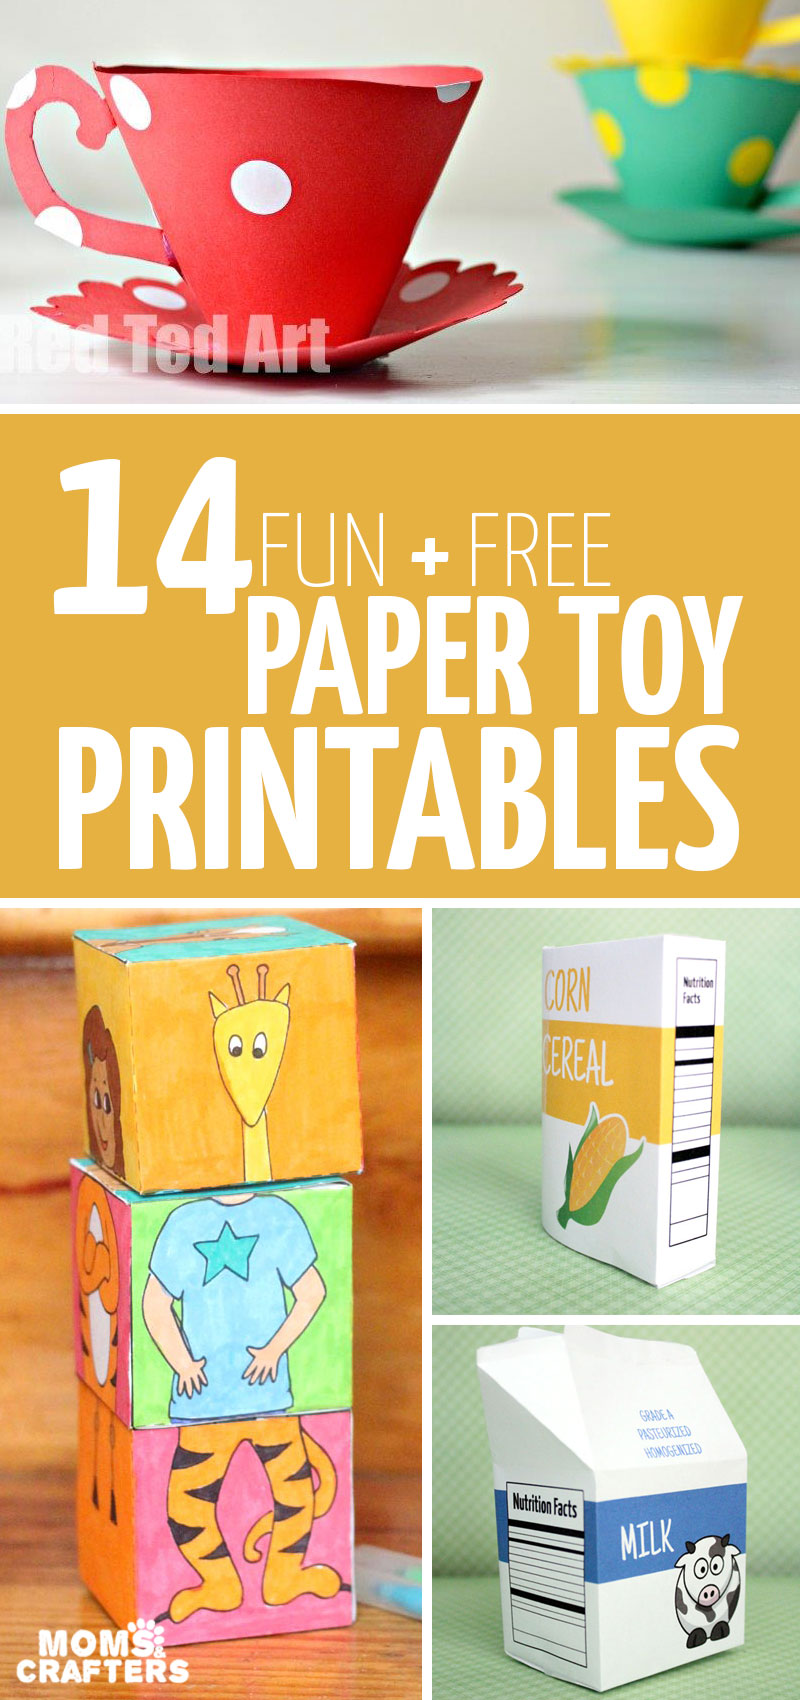 Click For A List Of Super Cool Free Printable Paper Toy Templates You Can